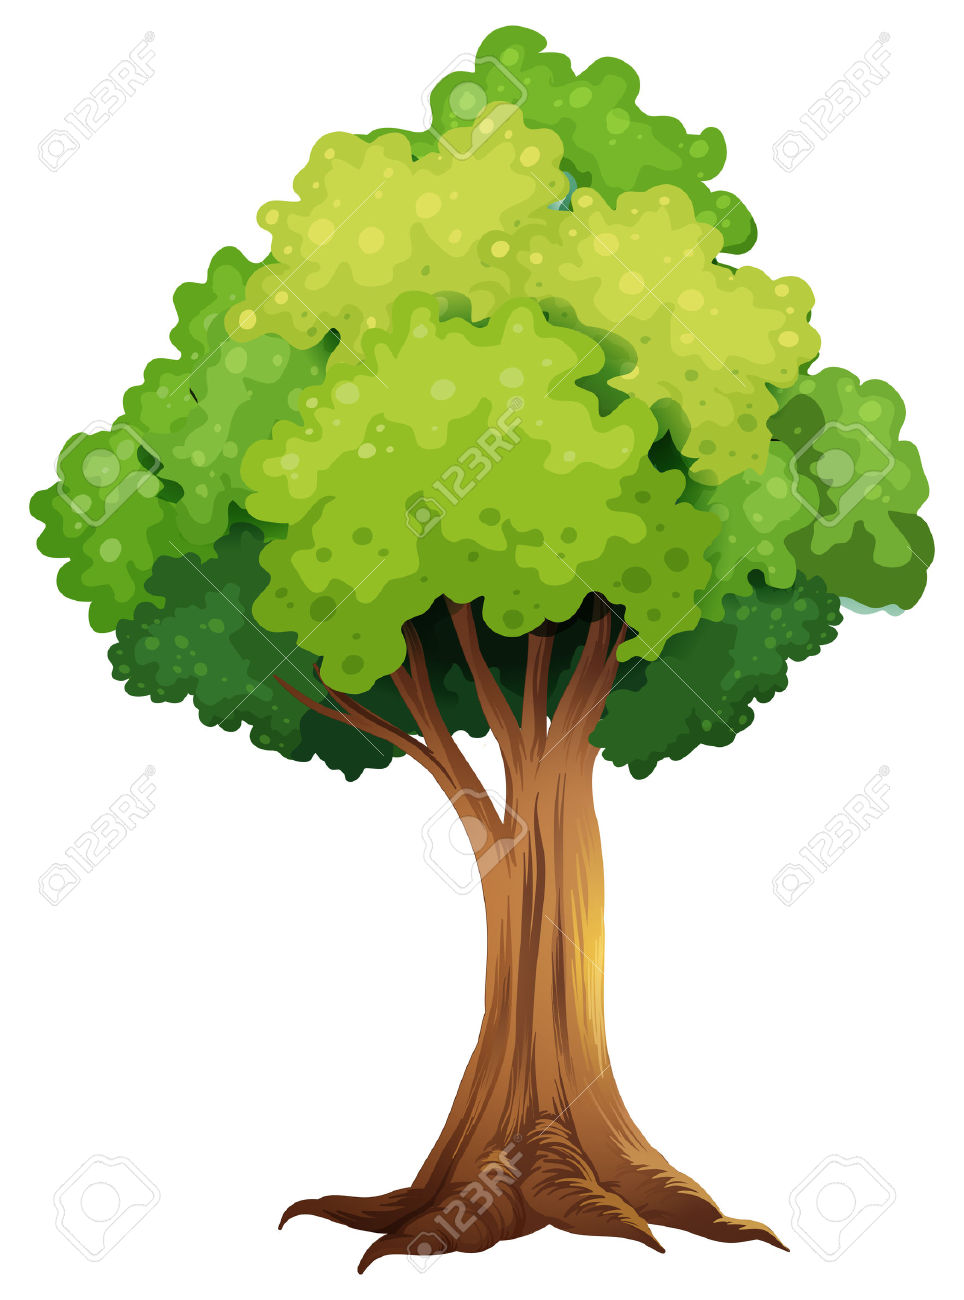 Illustration Of A Giant Tree On A White Background Royalty Free.